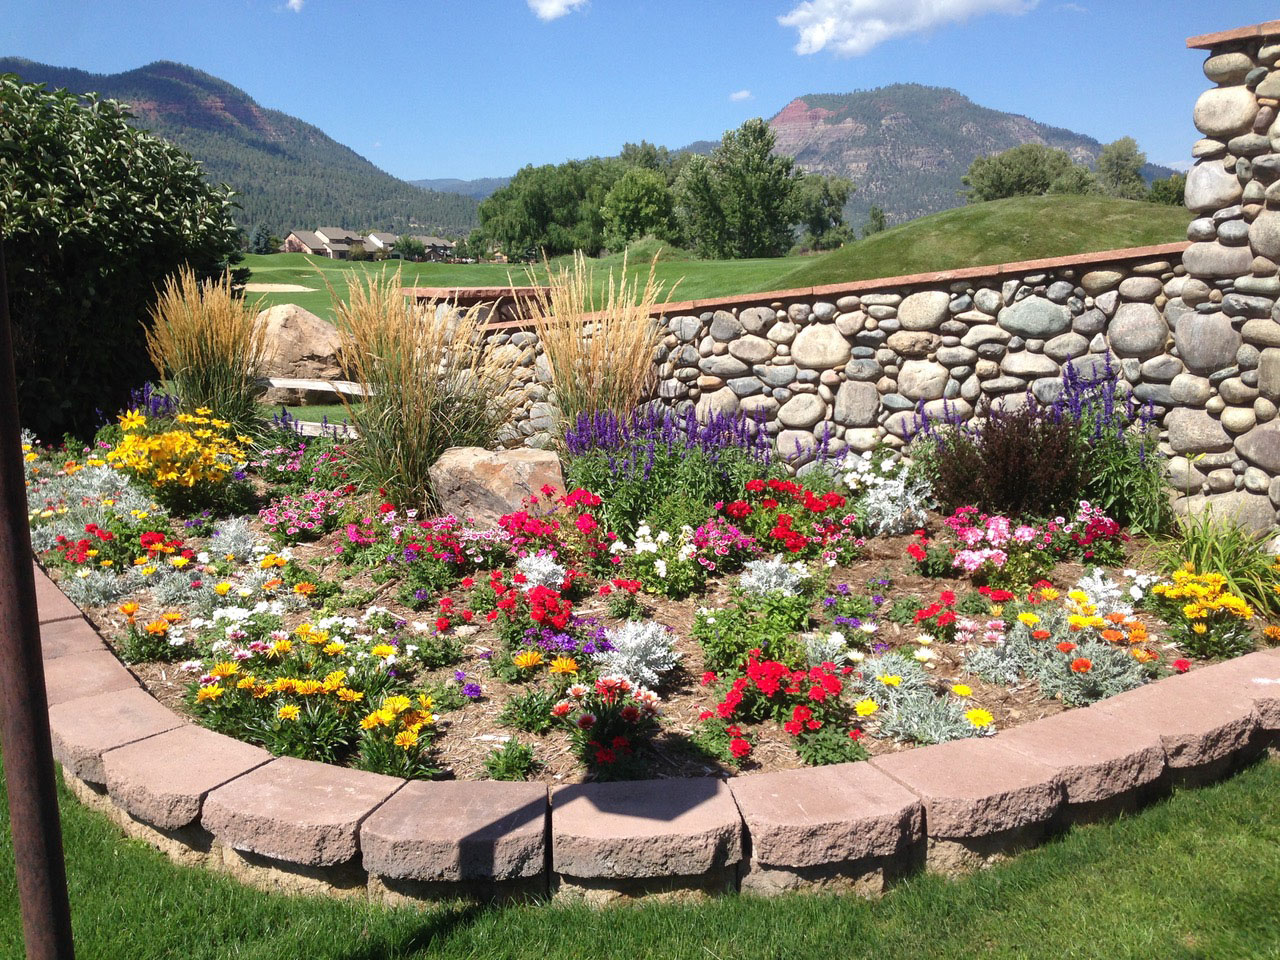 Green Acres Landscaping In Durango, Colorado